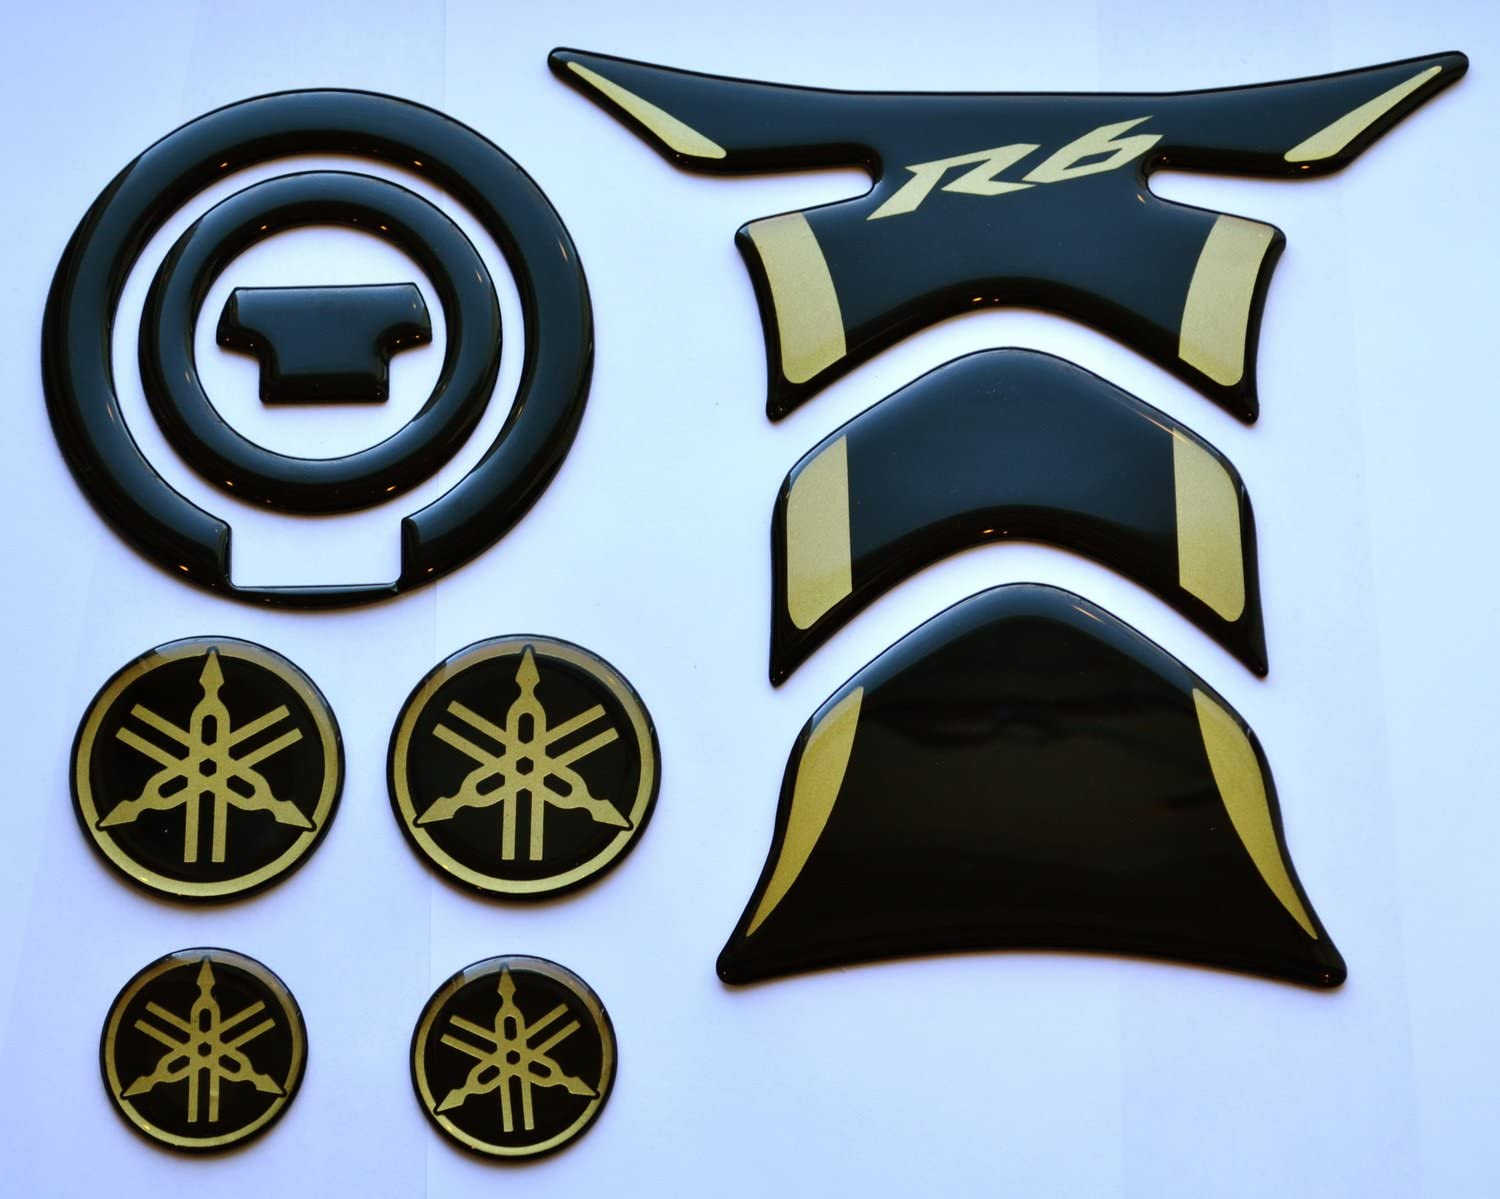 2 x YAMAHA Soft Font Decals Stickers for wheels,panels,tank,fairing